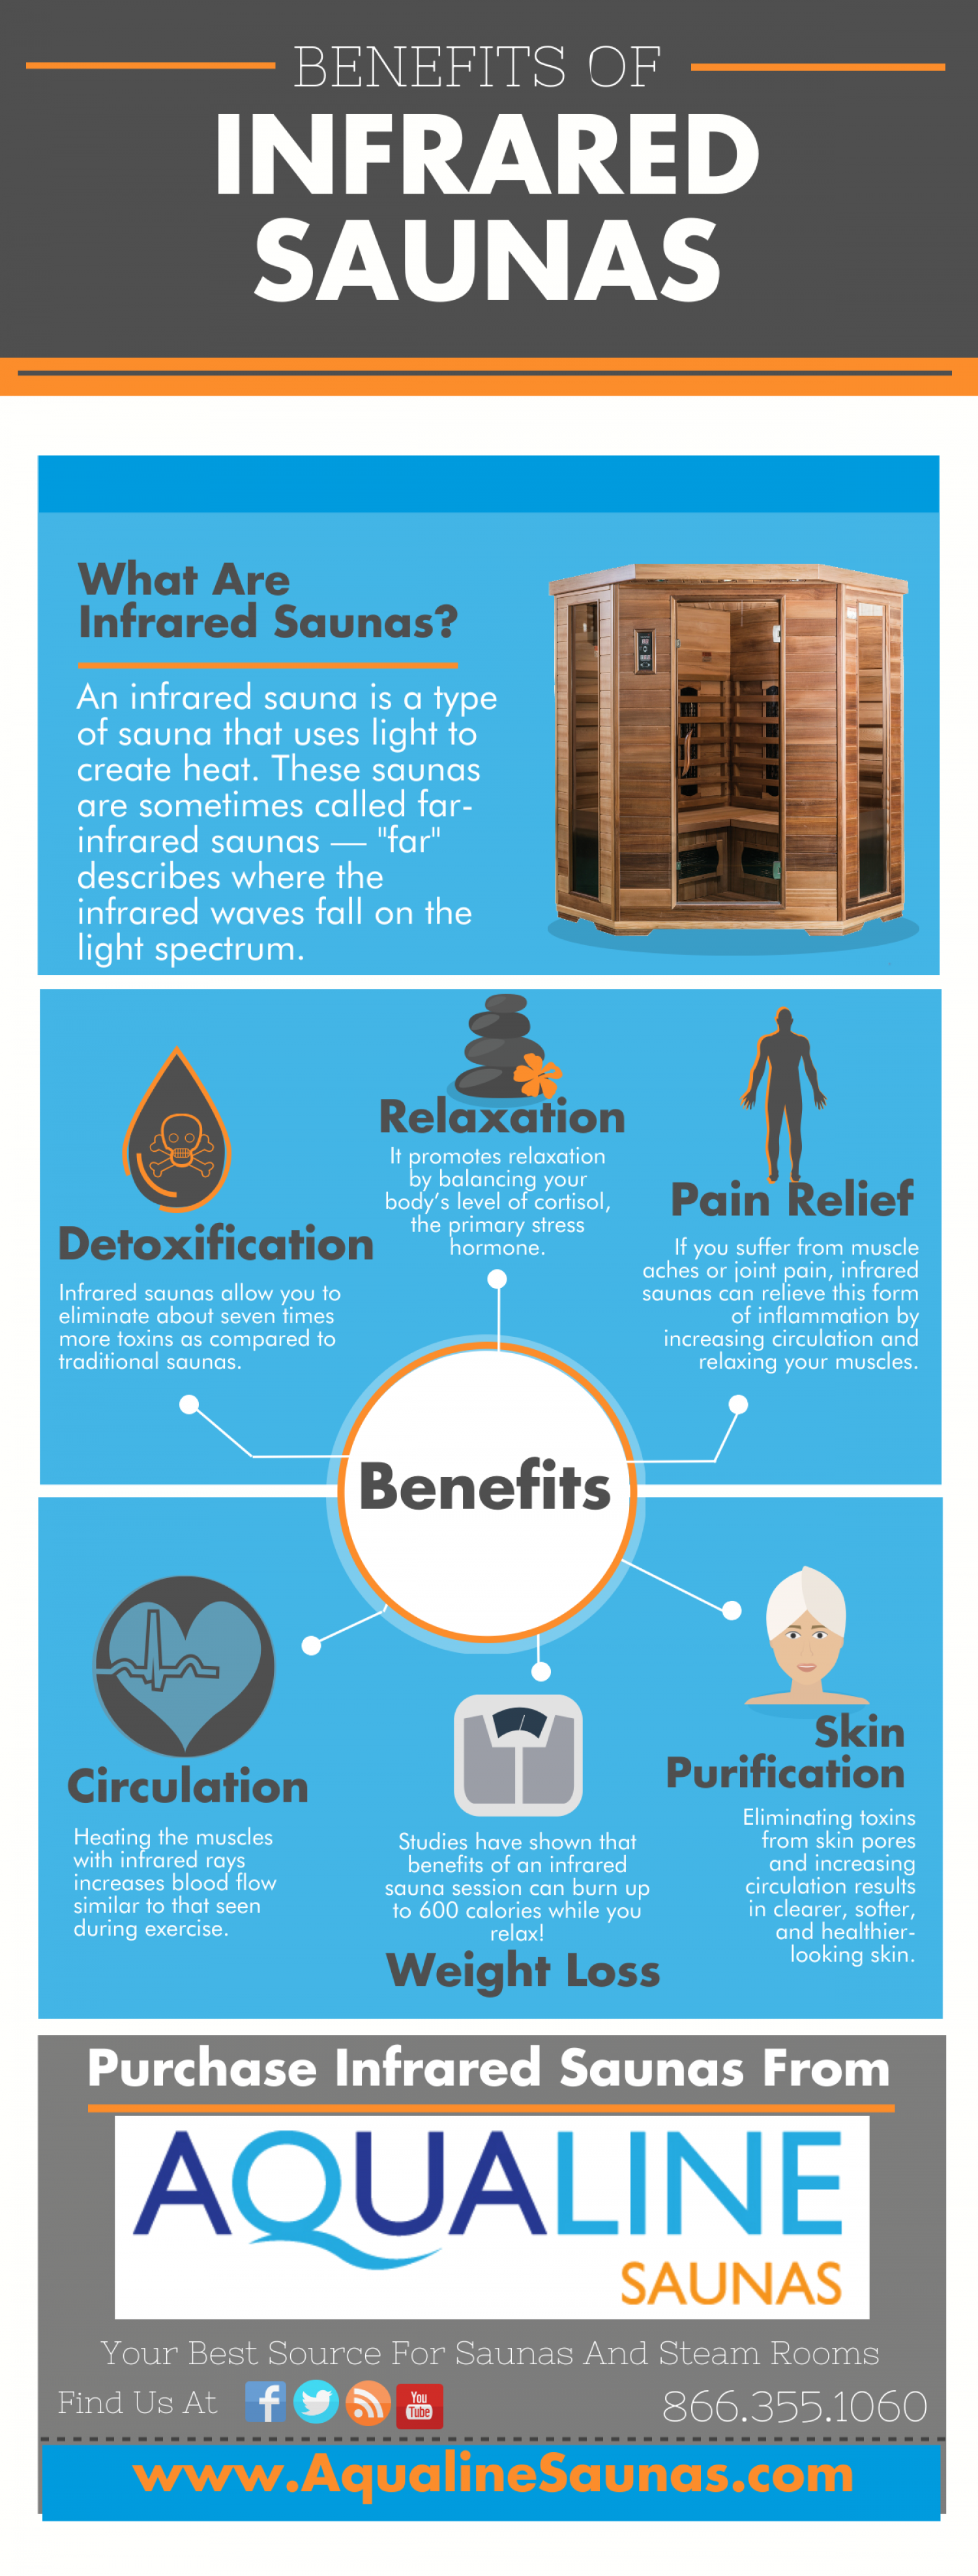 Benefits of Infrared Saunas Infographic